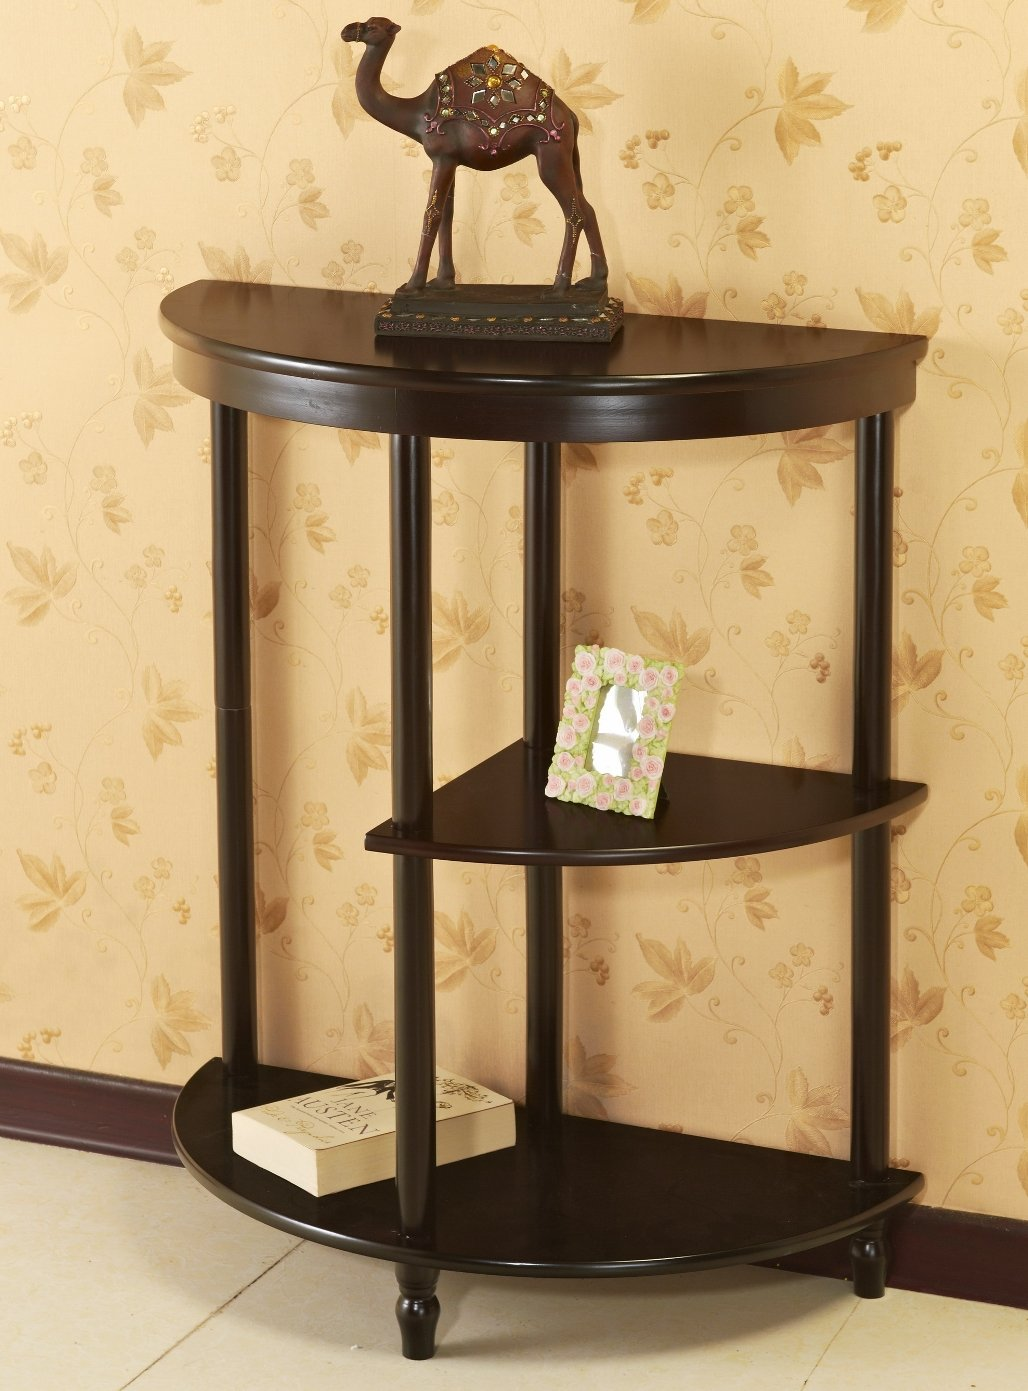 Hall Half Moon Console Table//End Table Frenchi Furniture Cherry 3-Tier Crescent